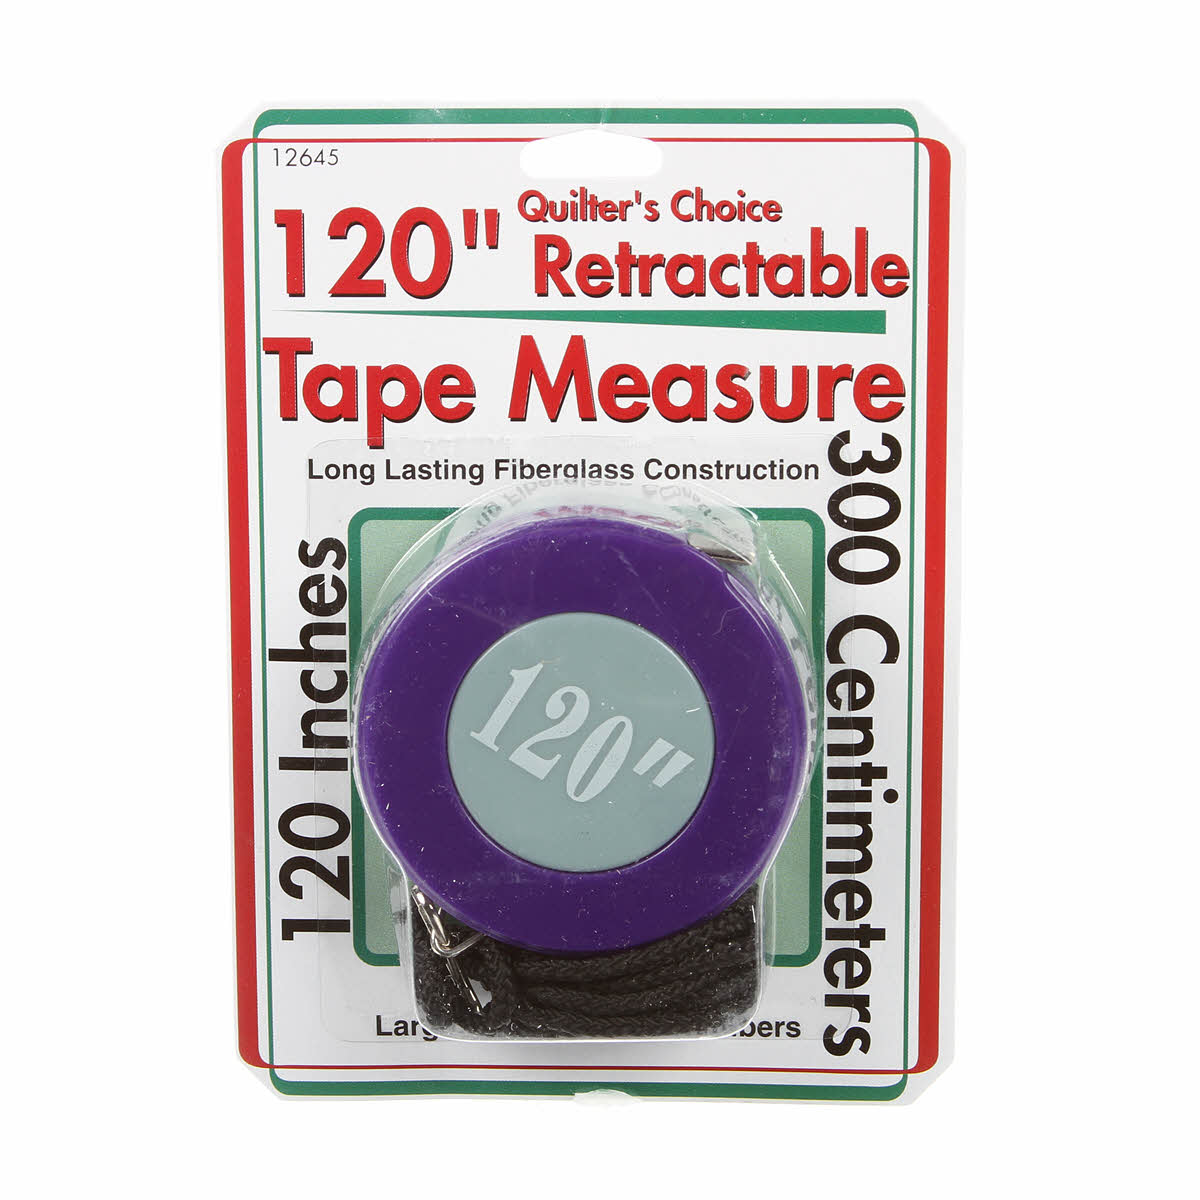 120 Retractable Tape Measure Quilters Choice